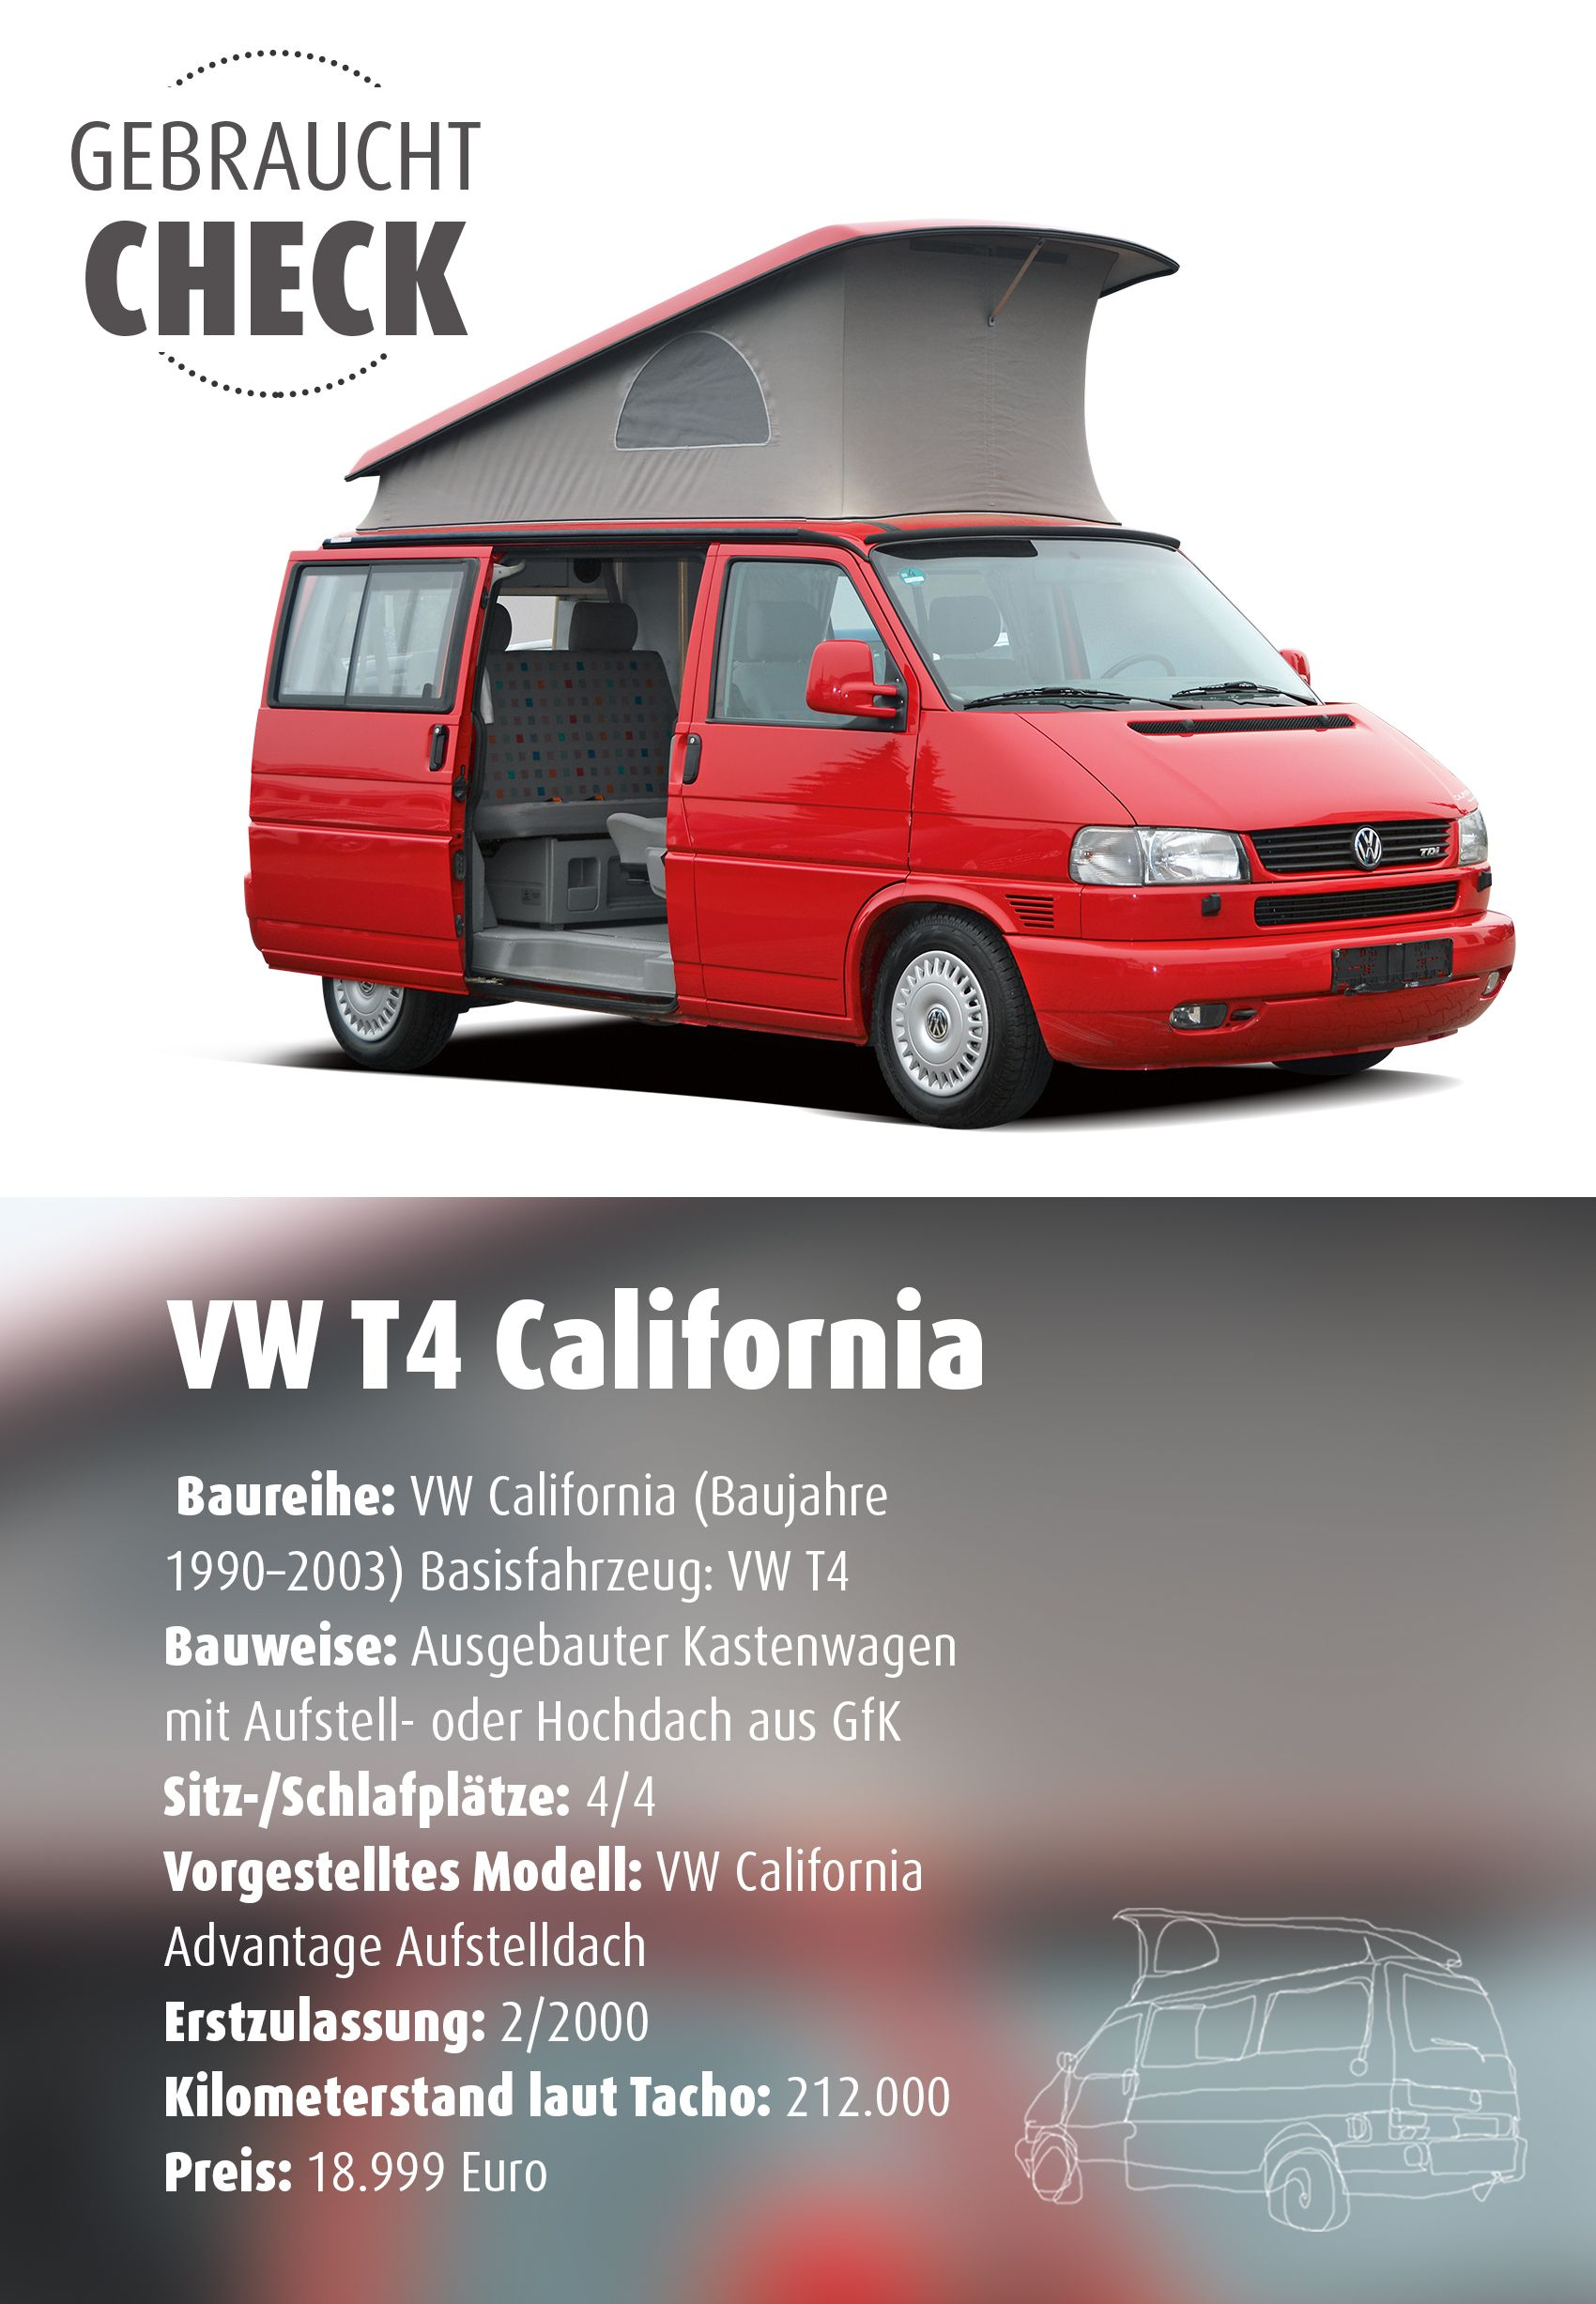 vw t4 california im gebrauchtcheck was taugt der vw t4. Black Bedroom Furniture Sets. Home Design Ideas